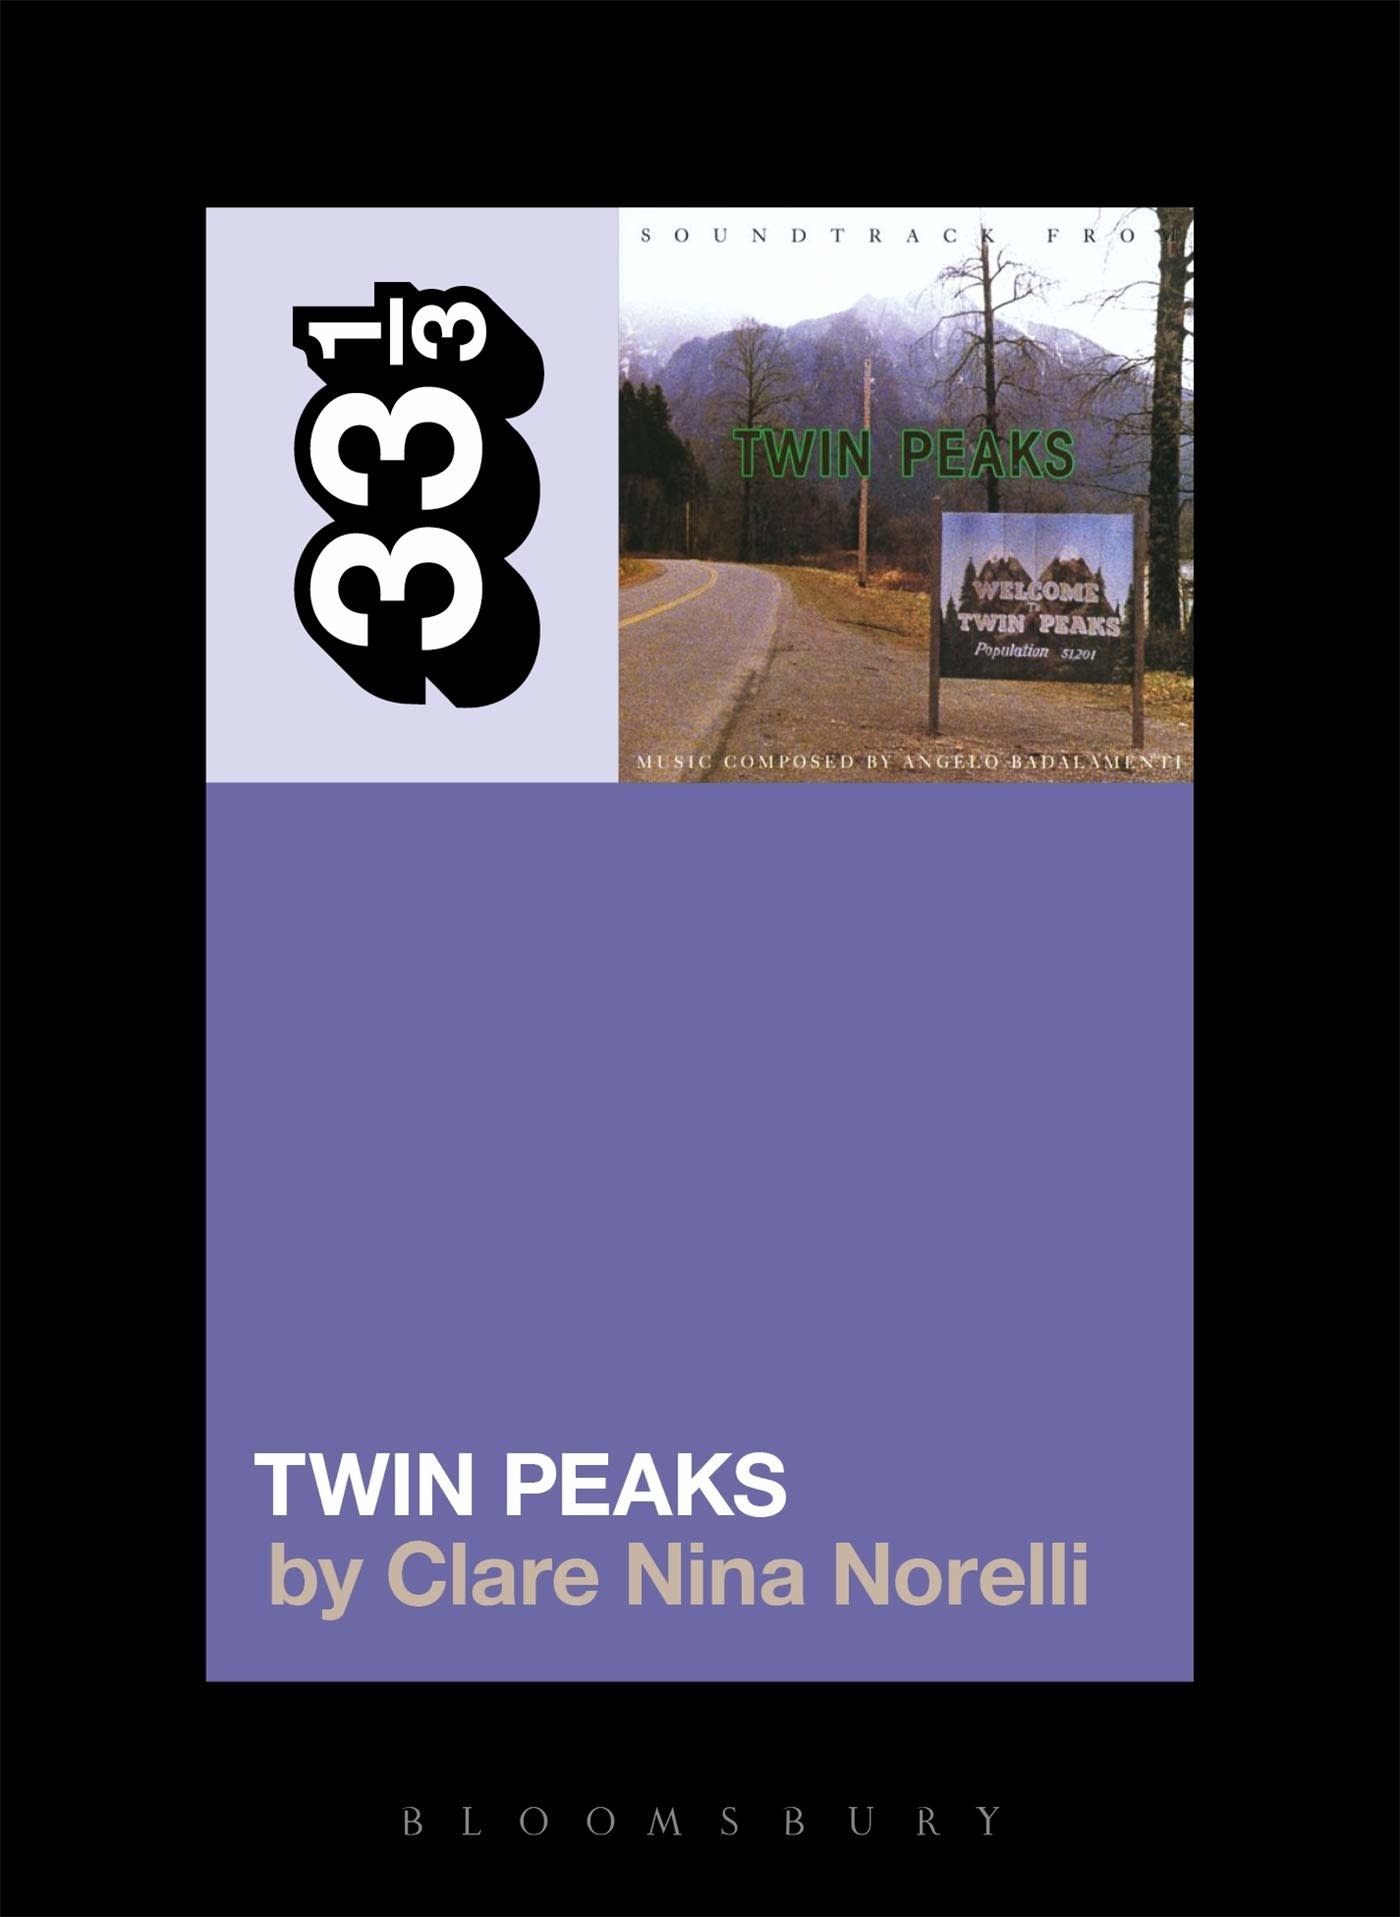 33 1/3 Series 33 1/3 - #120 - Soundtrack From Twin Peaks - Clare Nina Norelli